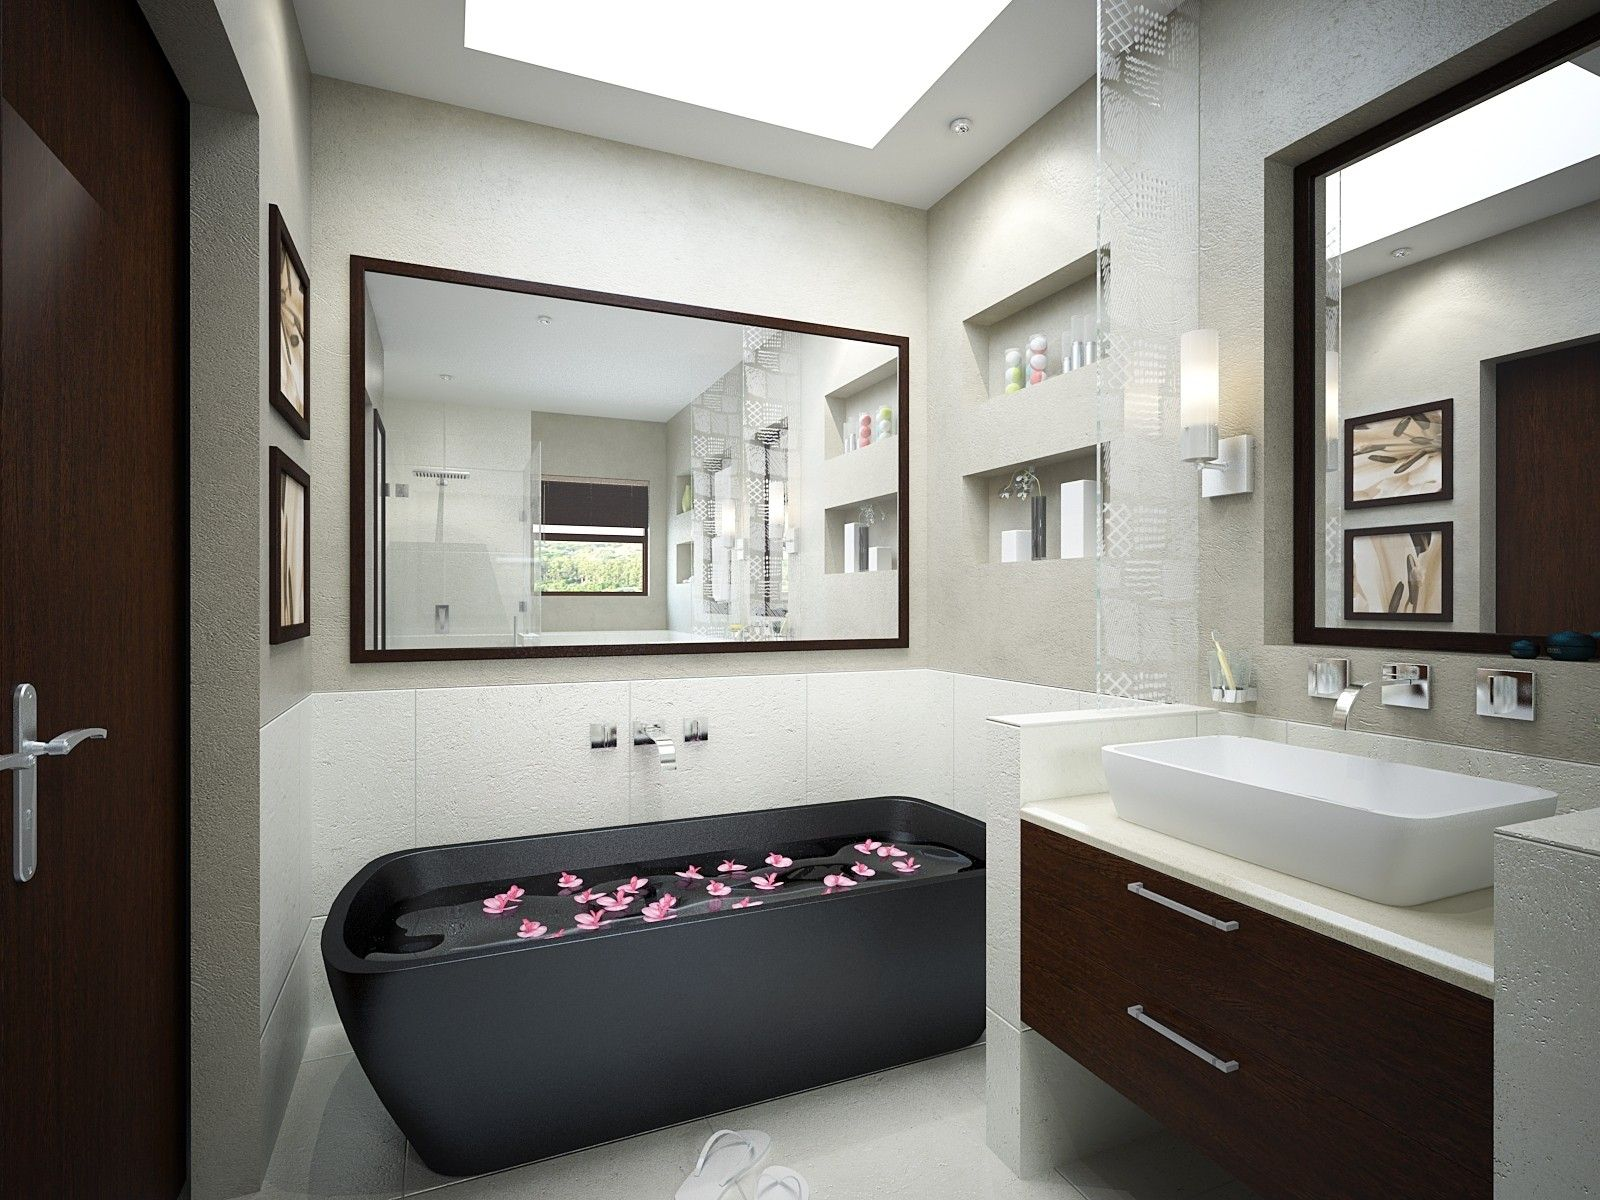 Porcelain Bathtub For The Beauty Of Your Bathroom - TheyDesign.net ...